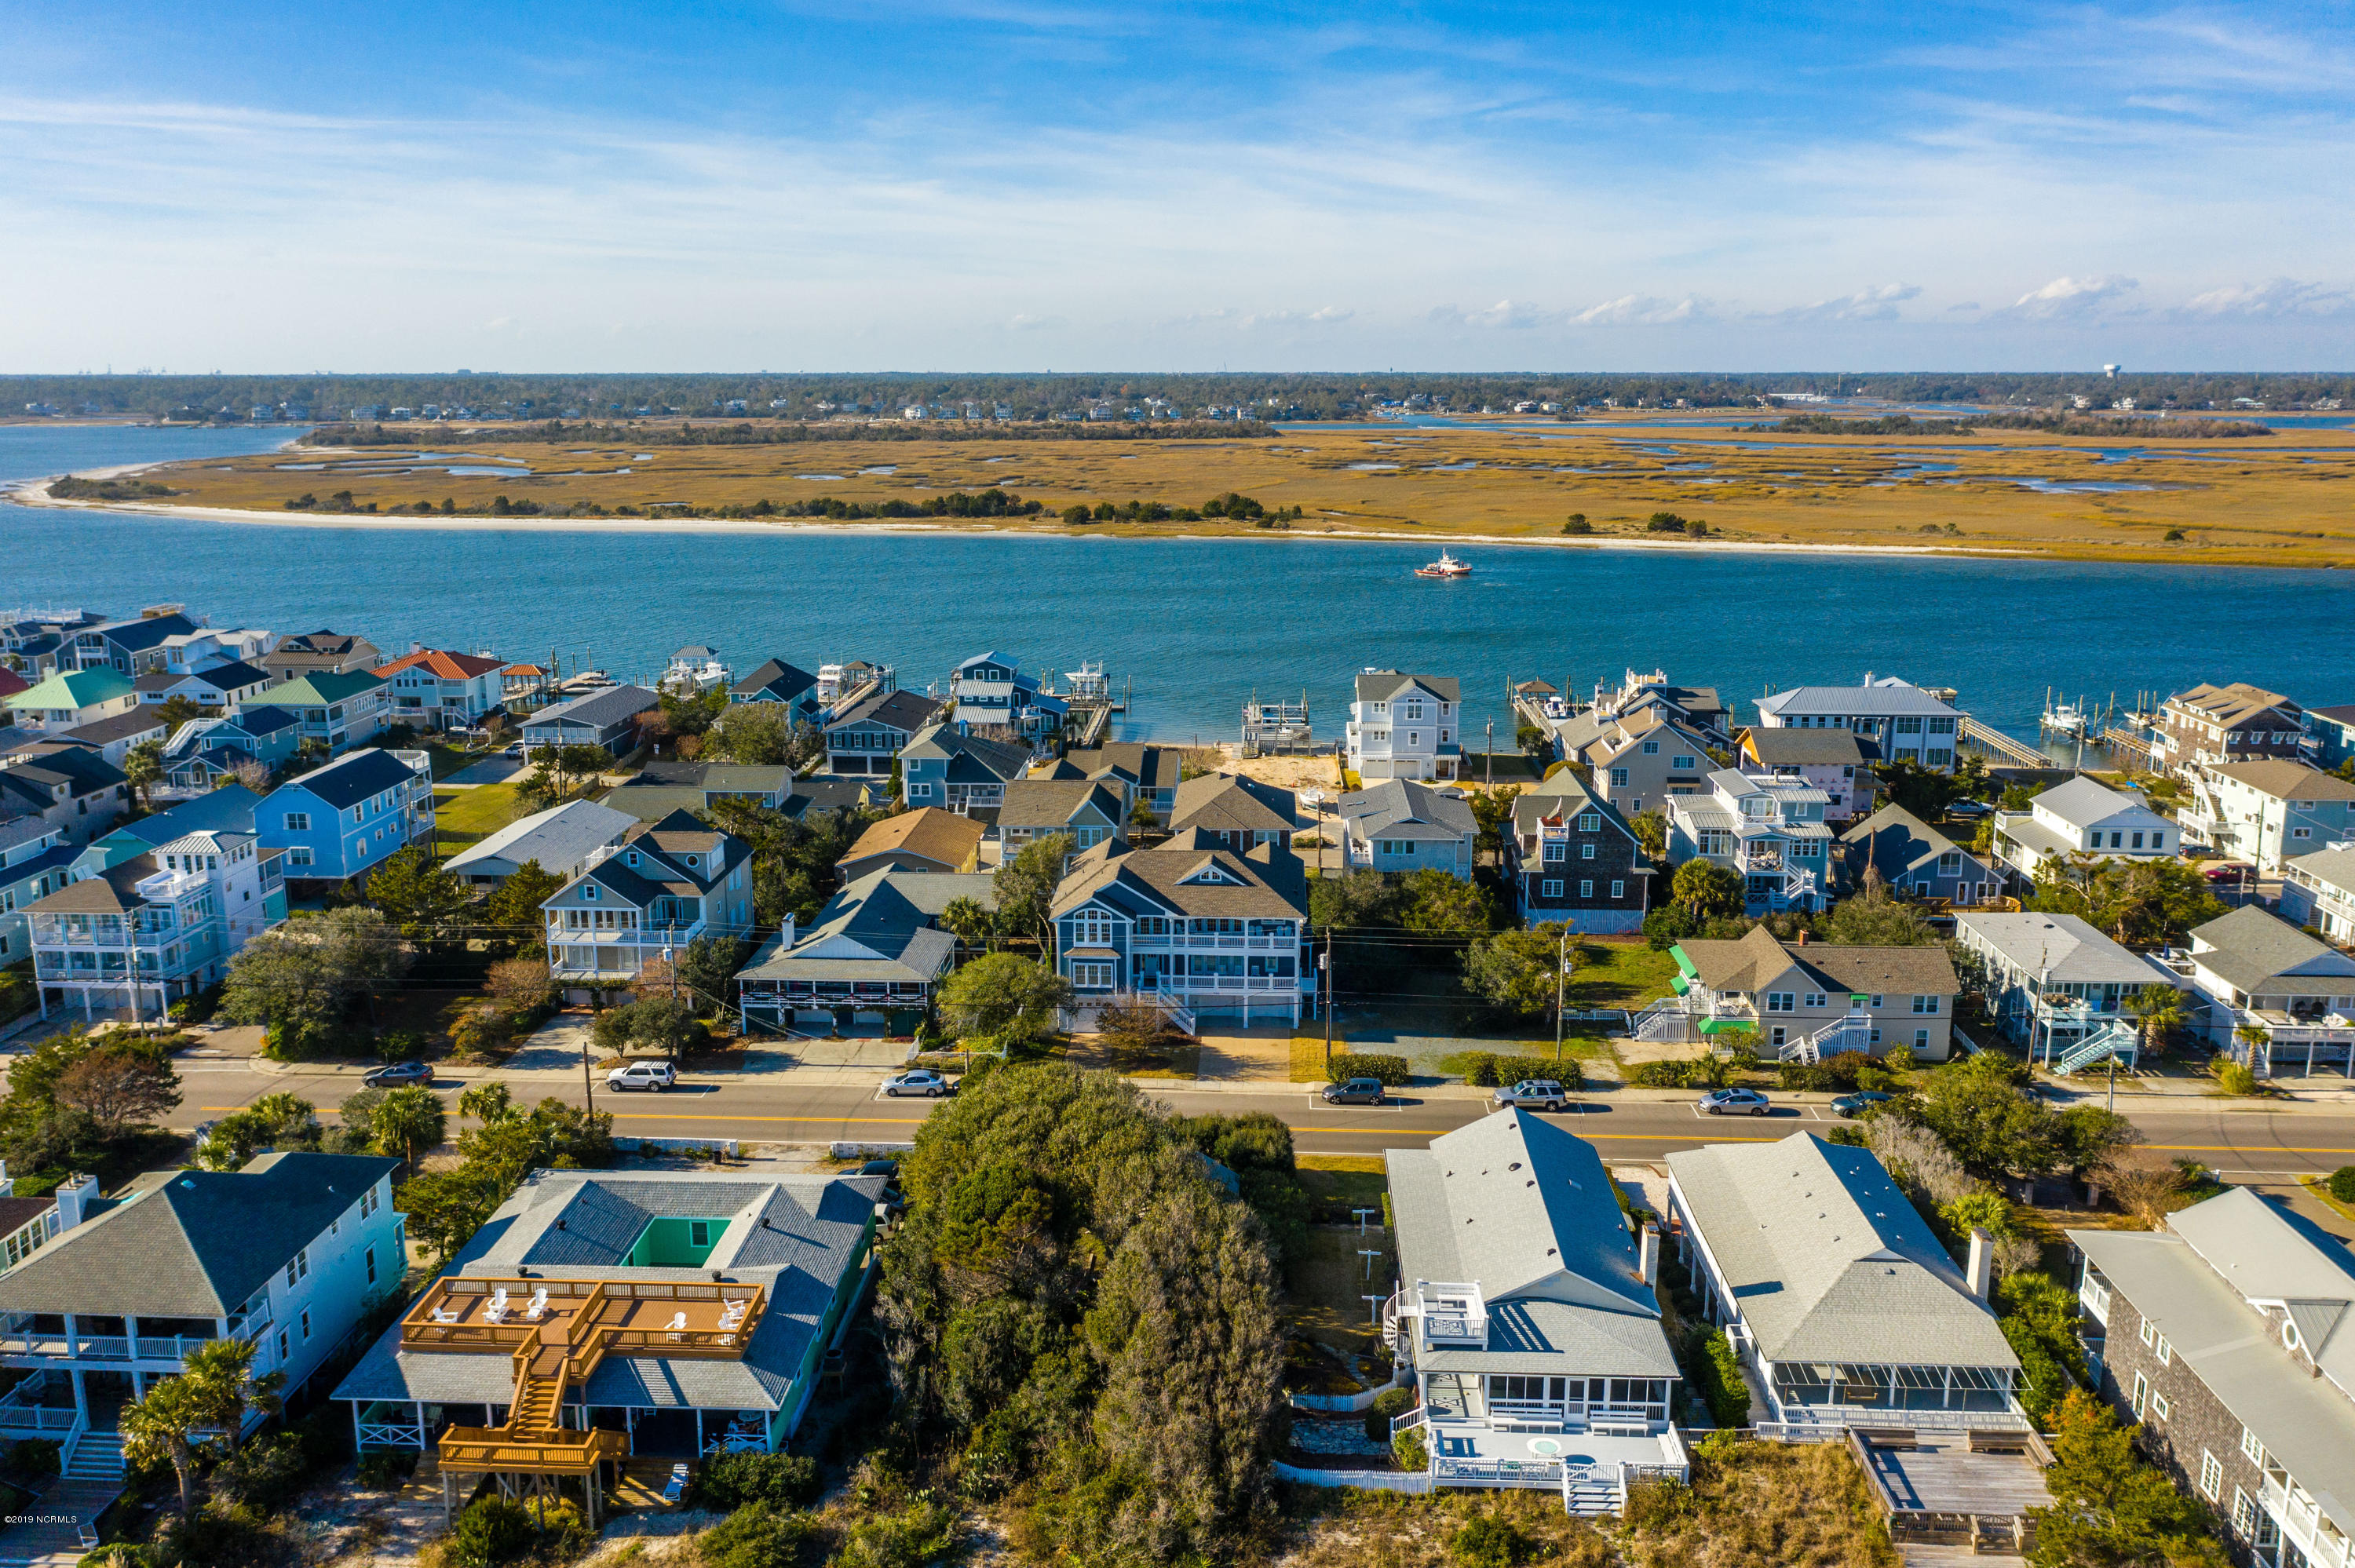 760 Lumina Avenue, Wrightsville Beach, North Carolina 28480, 8 Bedrooms Bedrooms, 13 Rooms Rooms,8 BathroomsBathrooms,Single family residence,For sale,Lumina,100196201